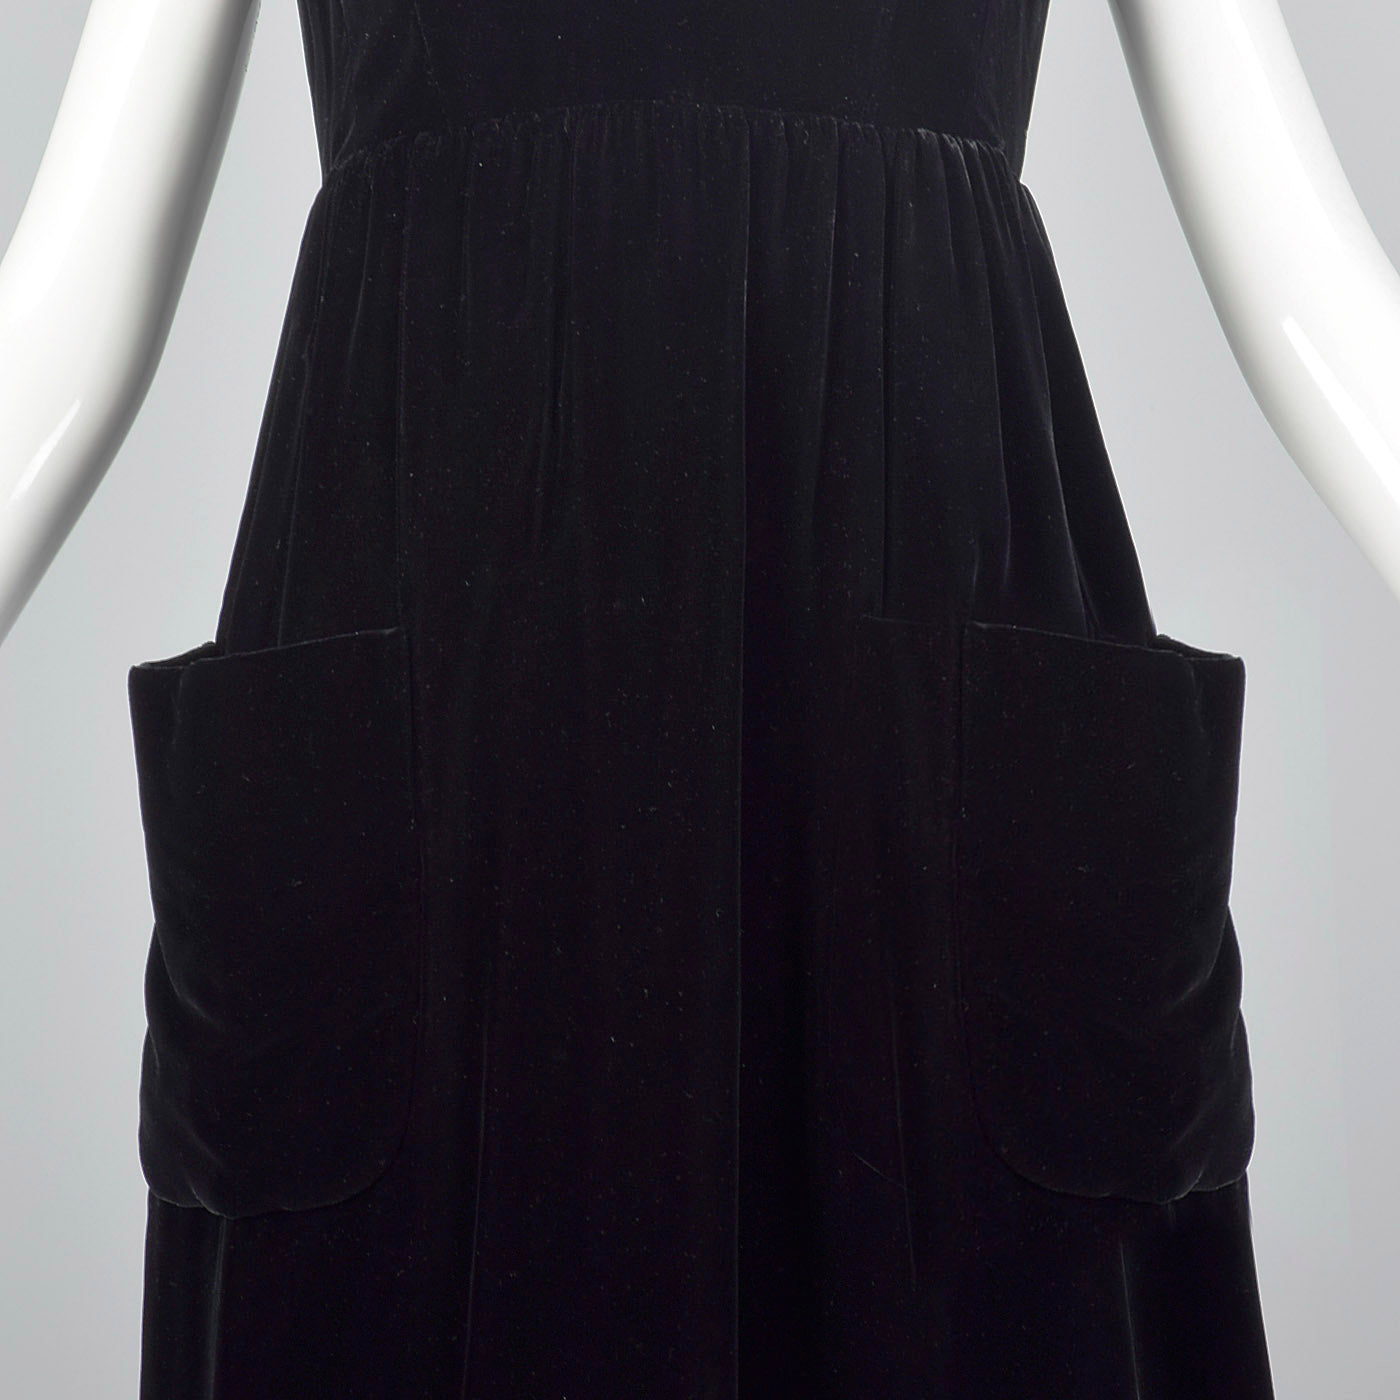 1960s Geoffrey Beene Black Velvet Wrap Dress with Large Patch Pockets